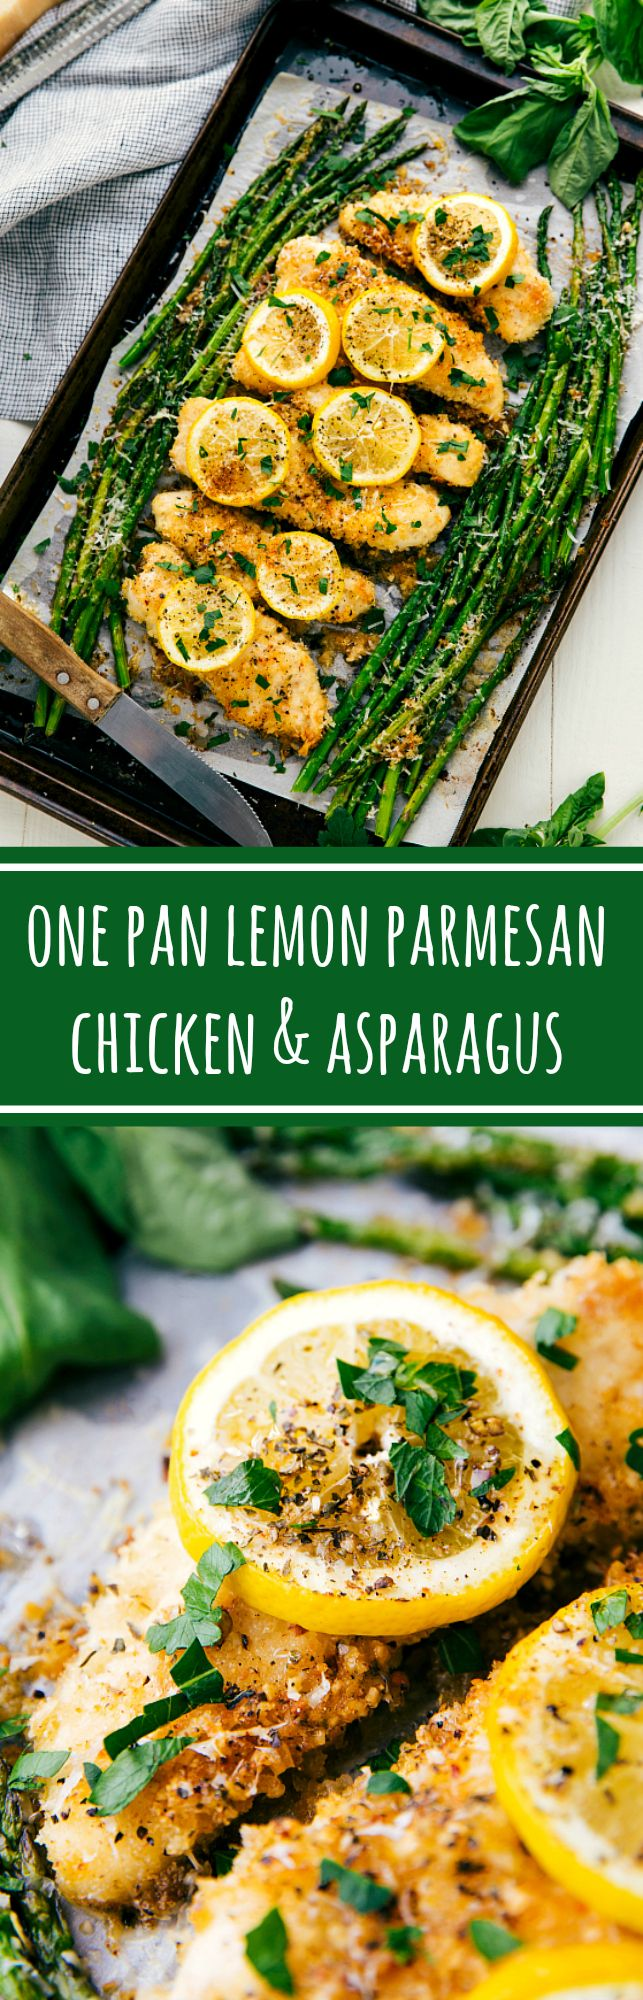 One Pan Lemon Parmesan Chicken and Asparagus (Video)